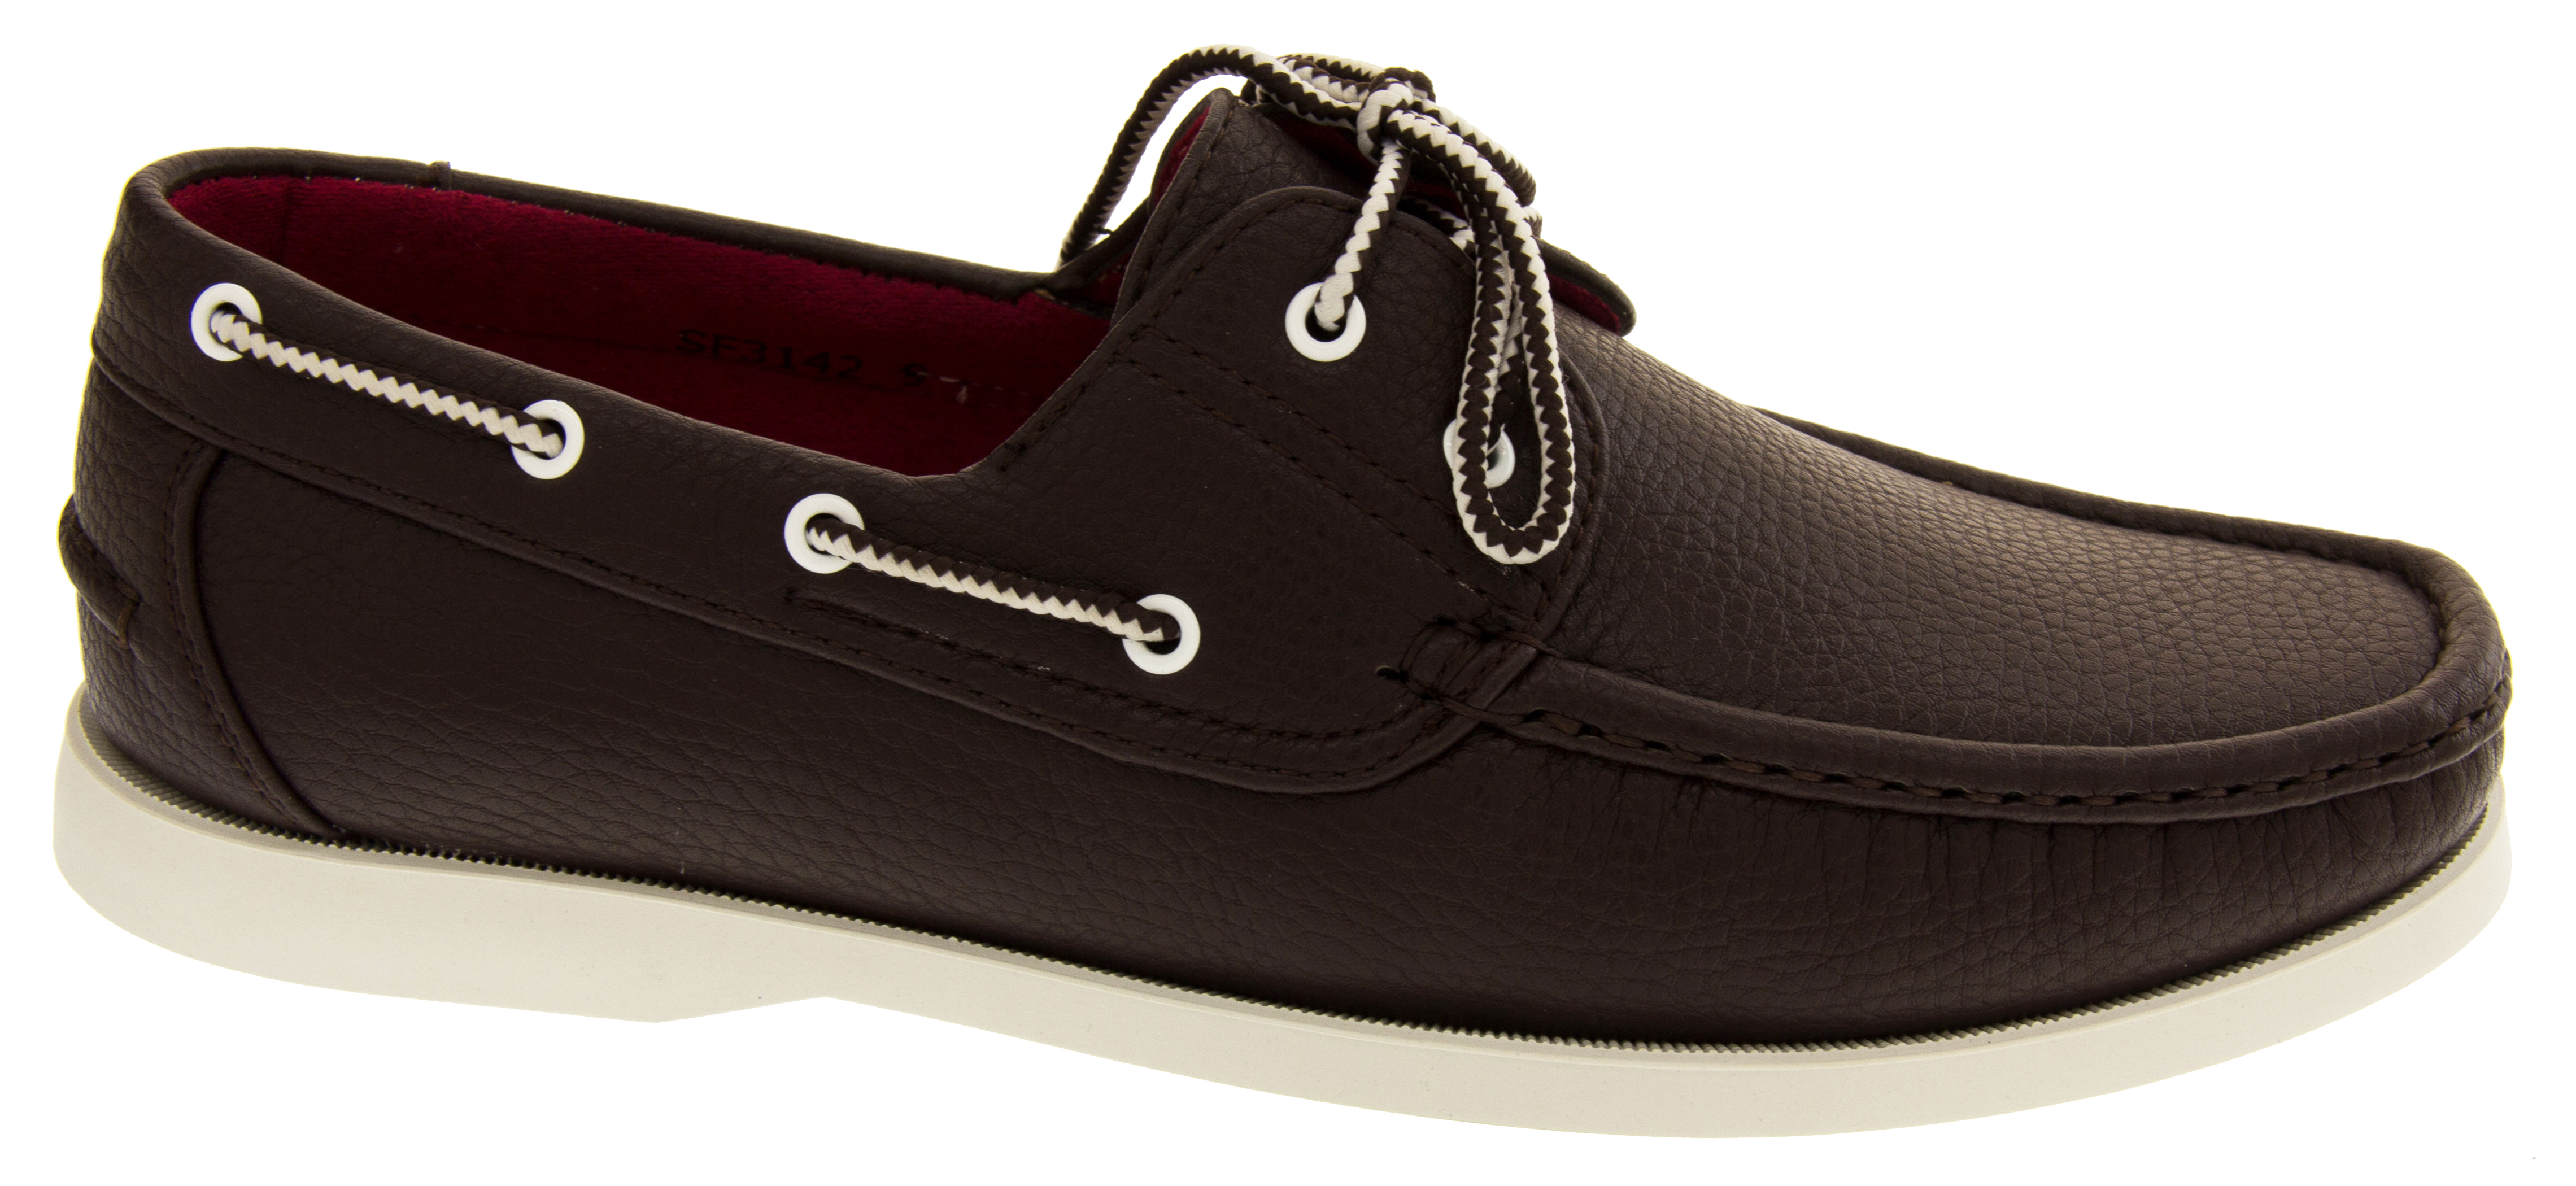 mens shoreside lace up boat shoes casual deck shoe loafers